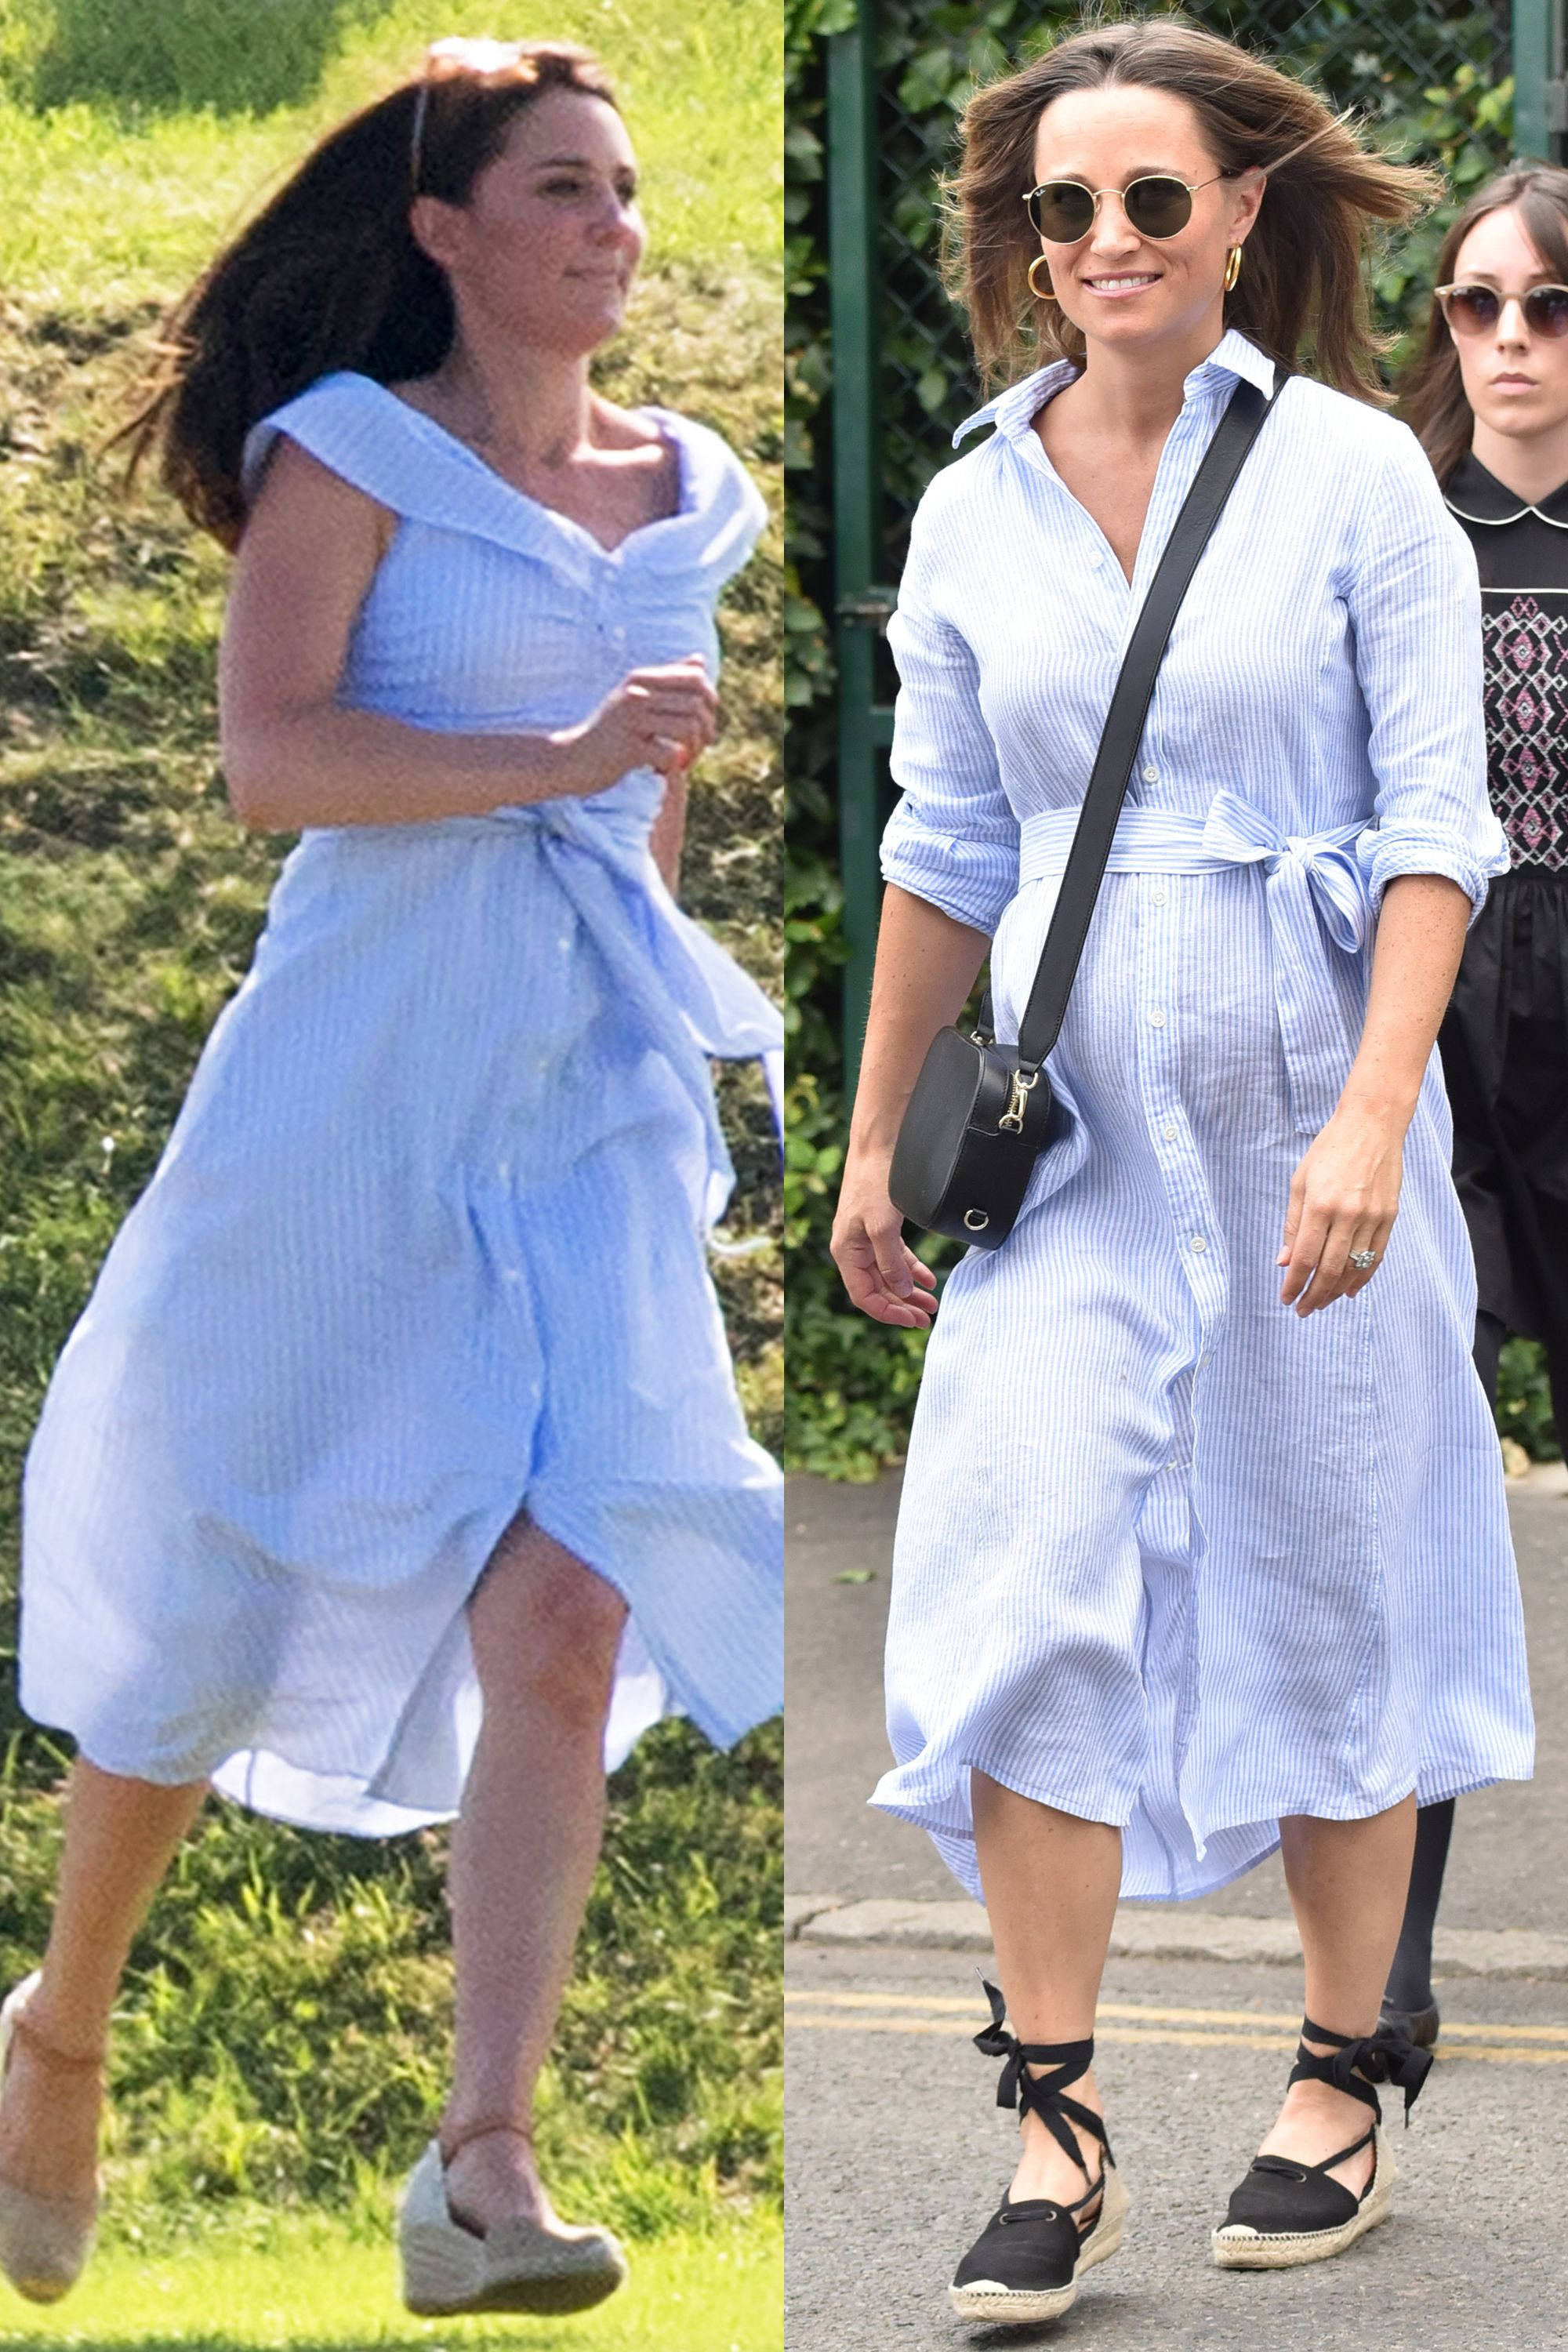 570af68fe25 Pippa Middleton and Kate Middleton Dressing Alike - Pippa Middleton and  Kate Middleton Matching Outfits